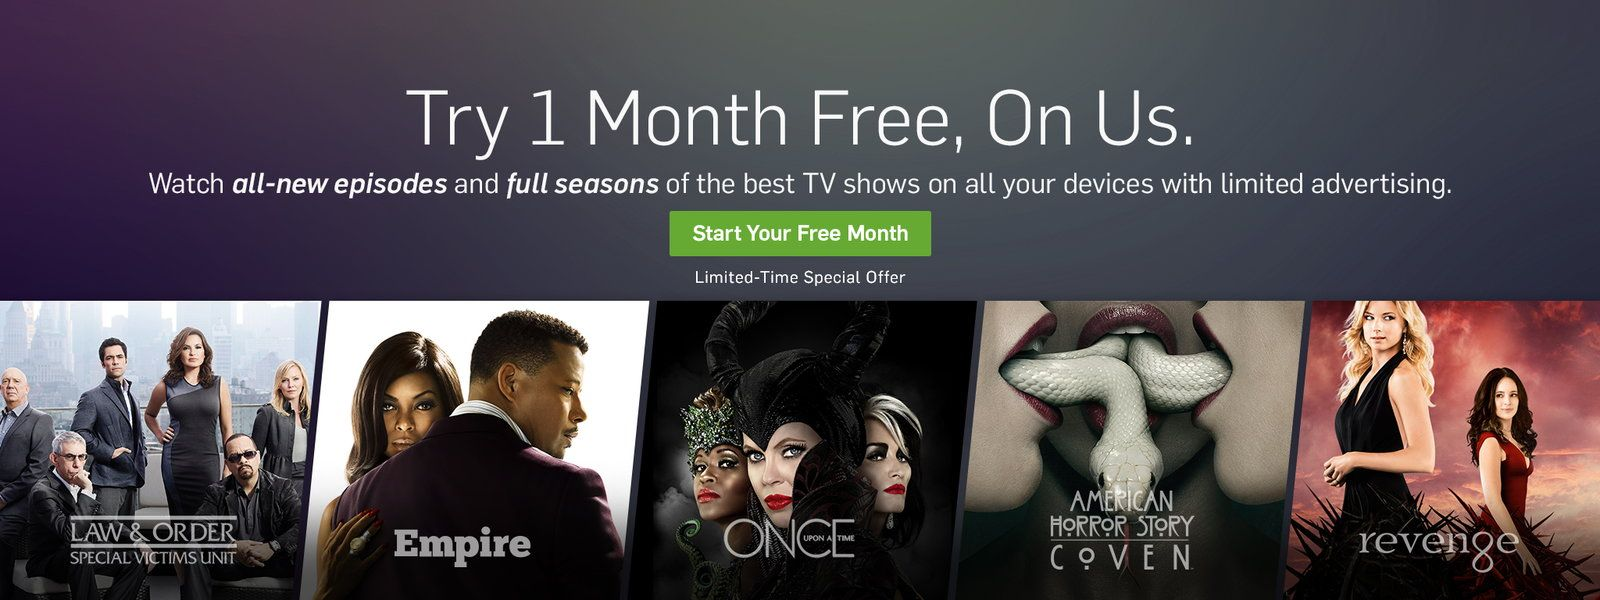 Free TV Shows and Movies Watch Your Favorite TV Episodes